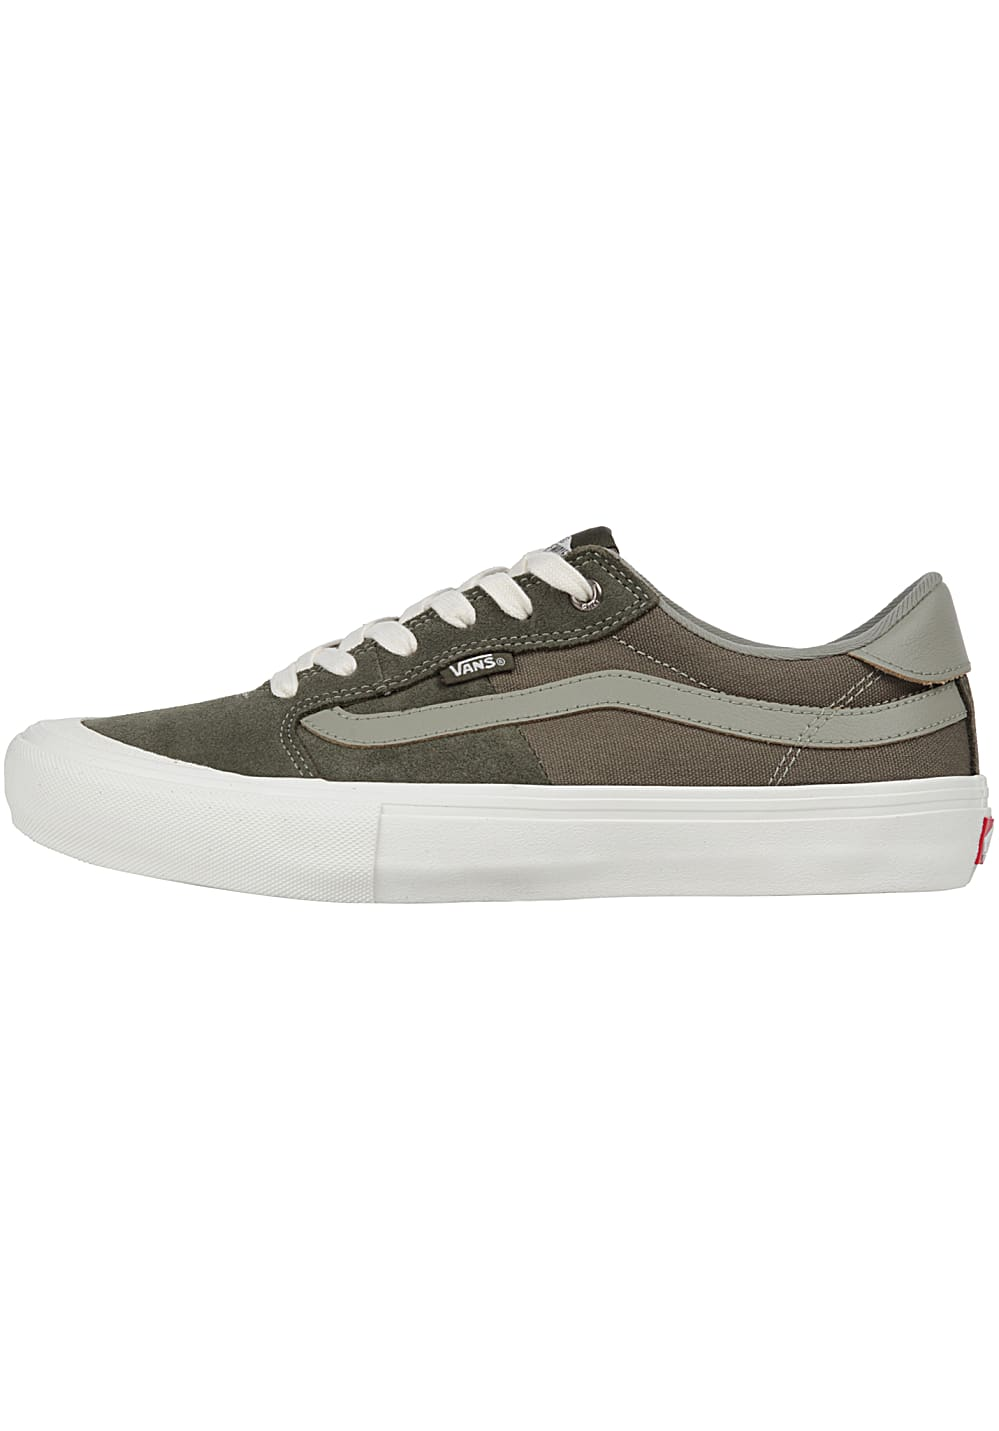 Vans Style 112 Pro VN0A347XUH5